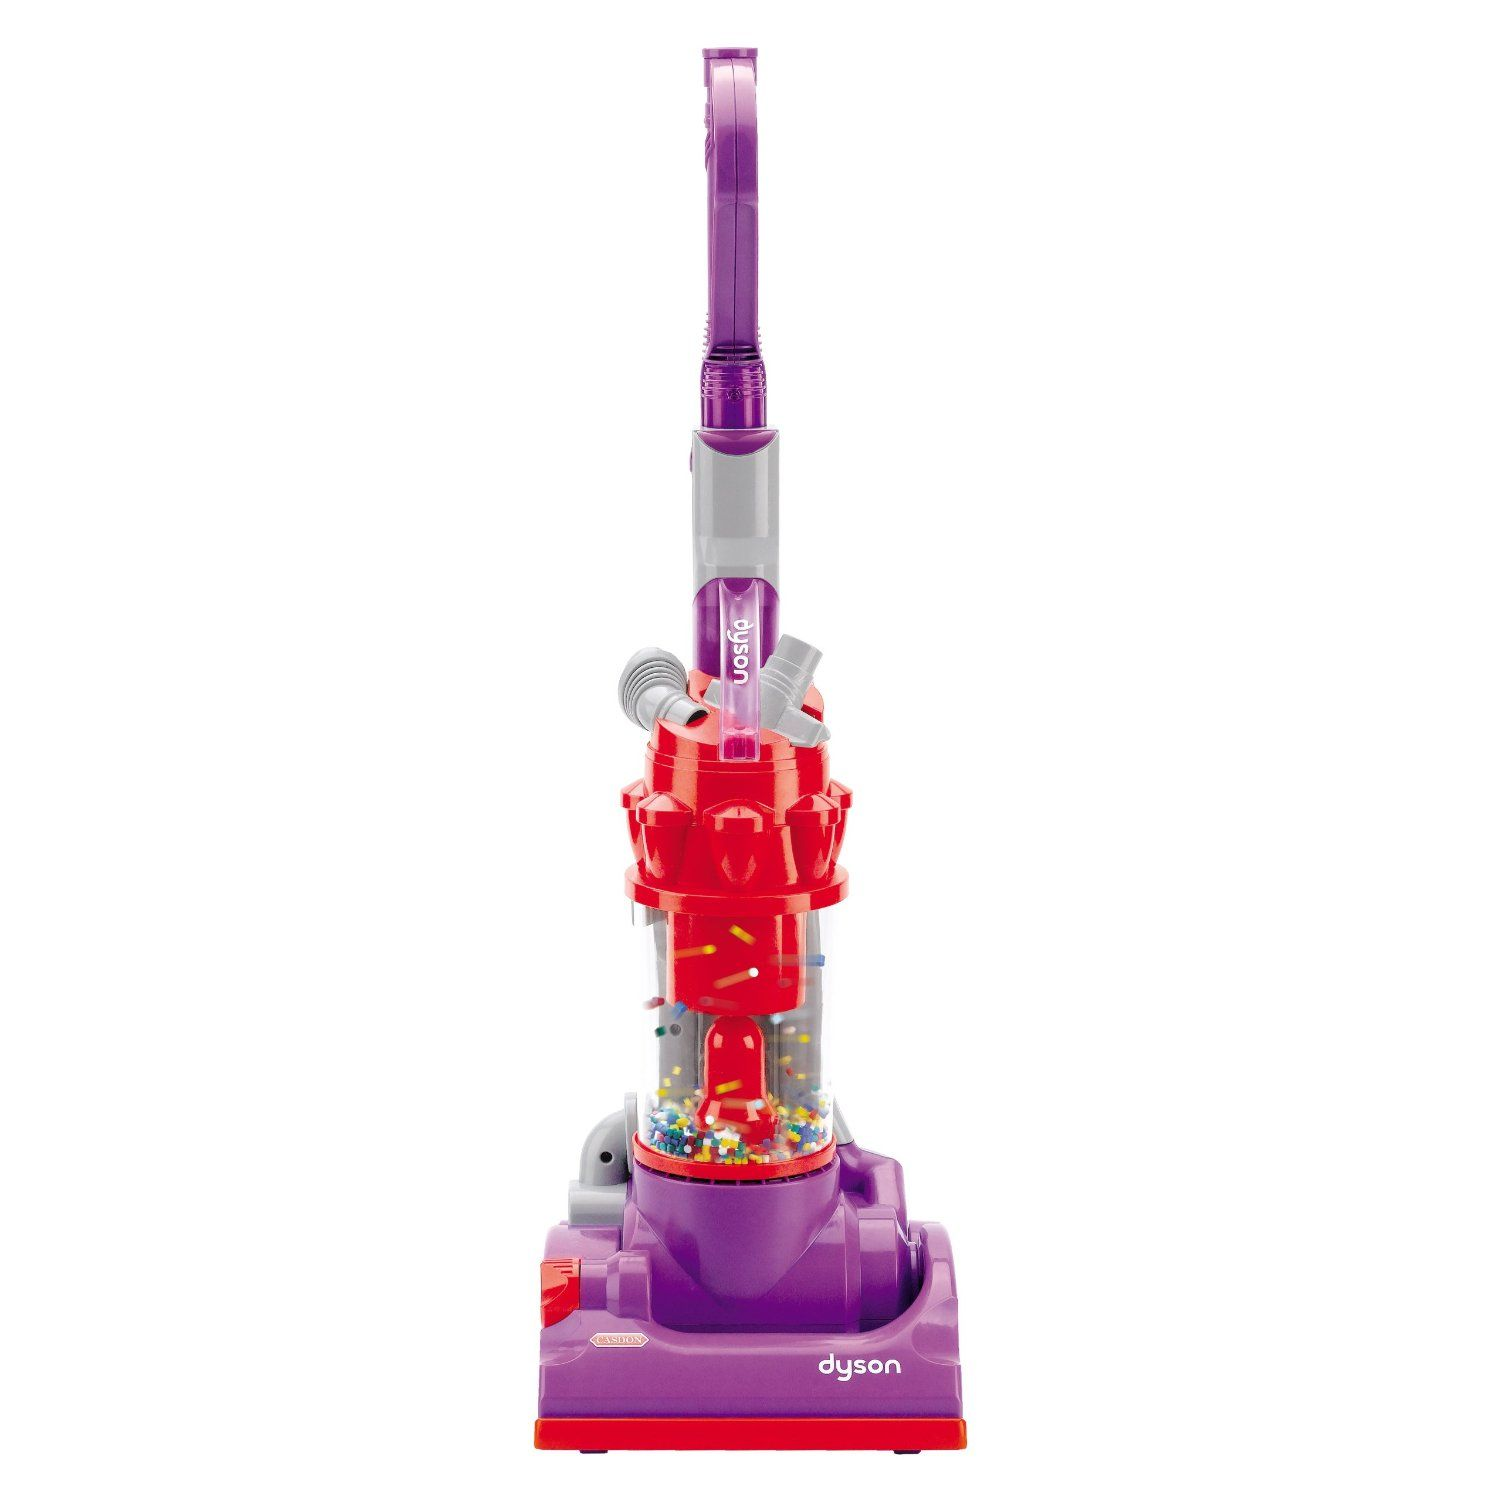 Dyson Toy Vacuum For The Kiddies Exact Replica 40